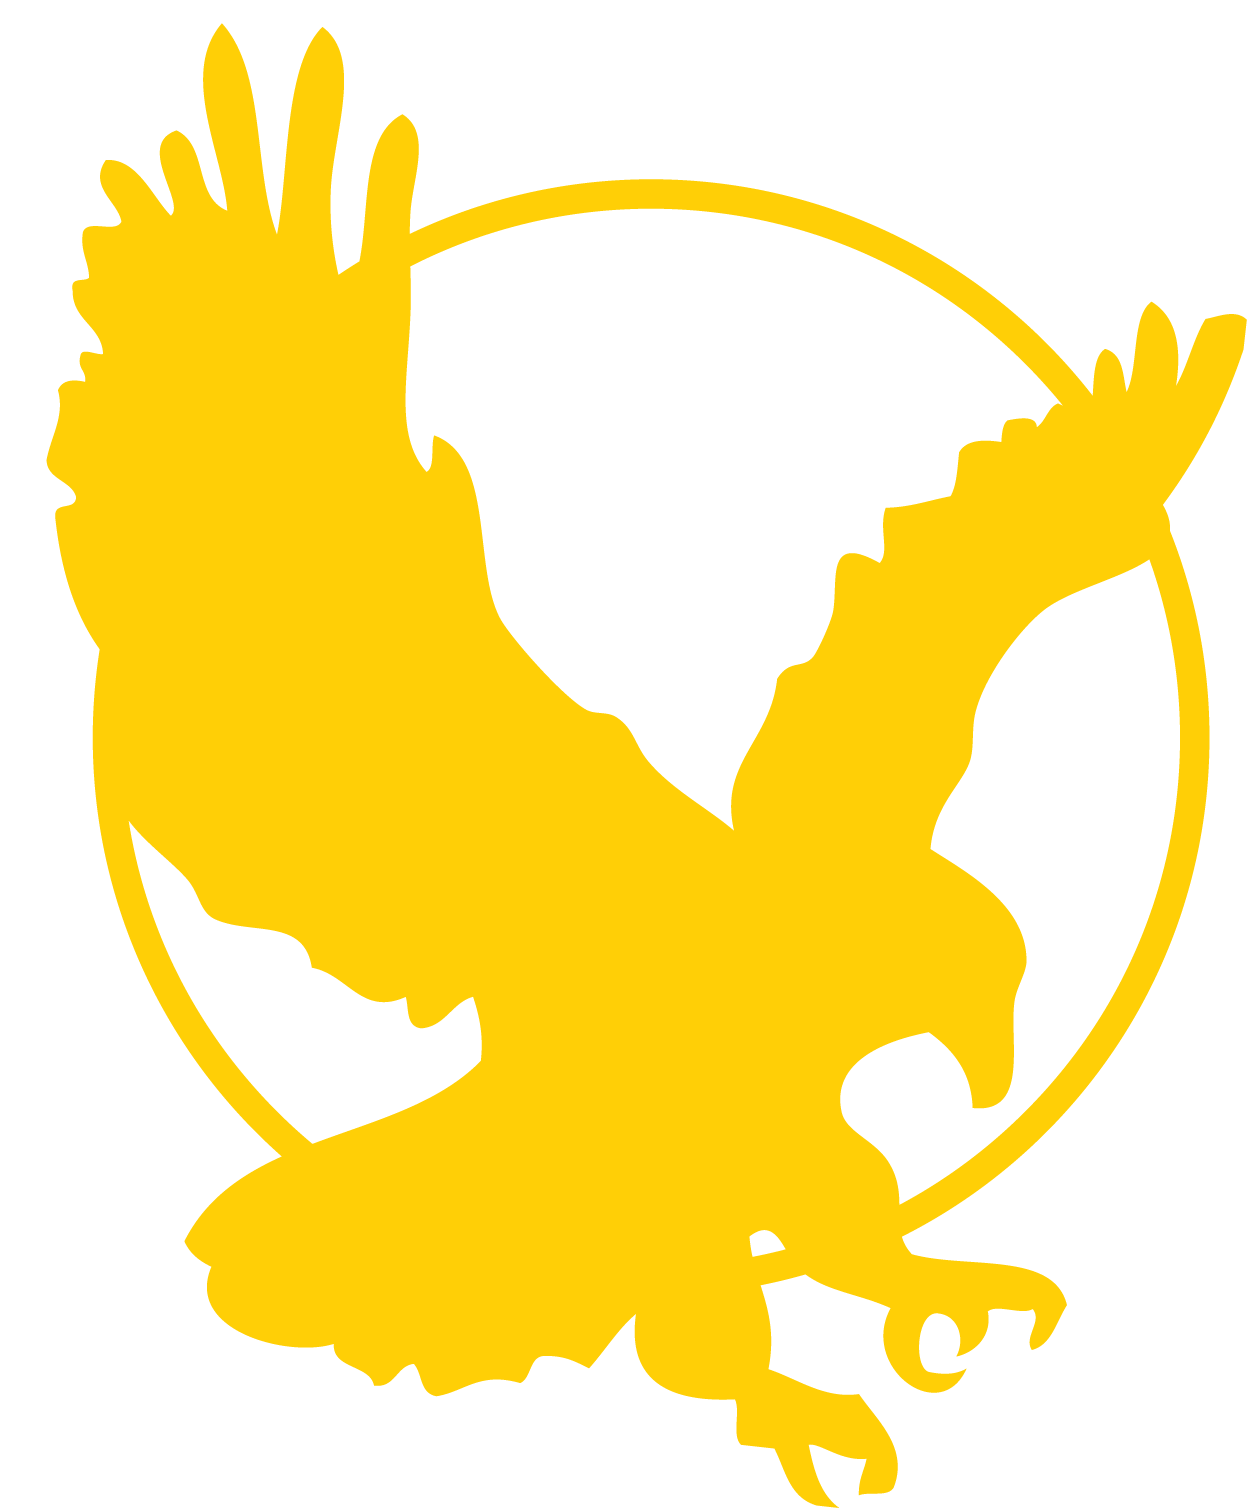 17 Black And Gold Eagle Icon Images.